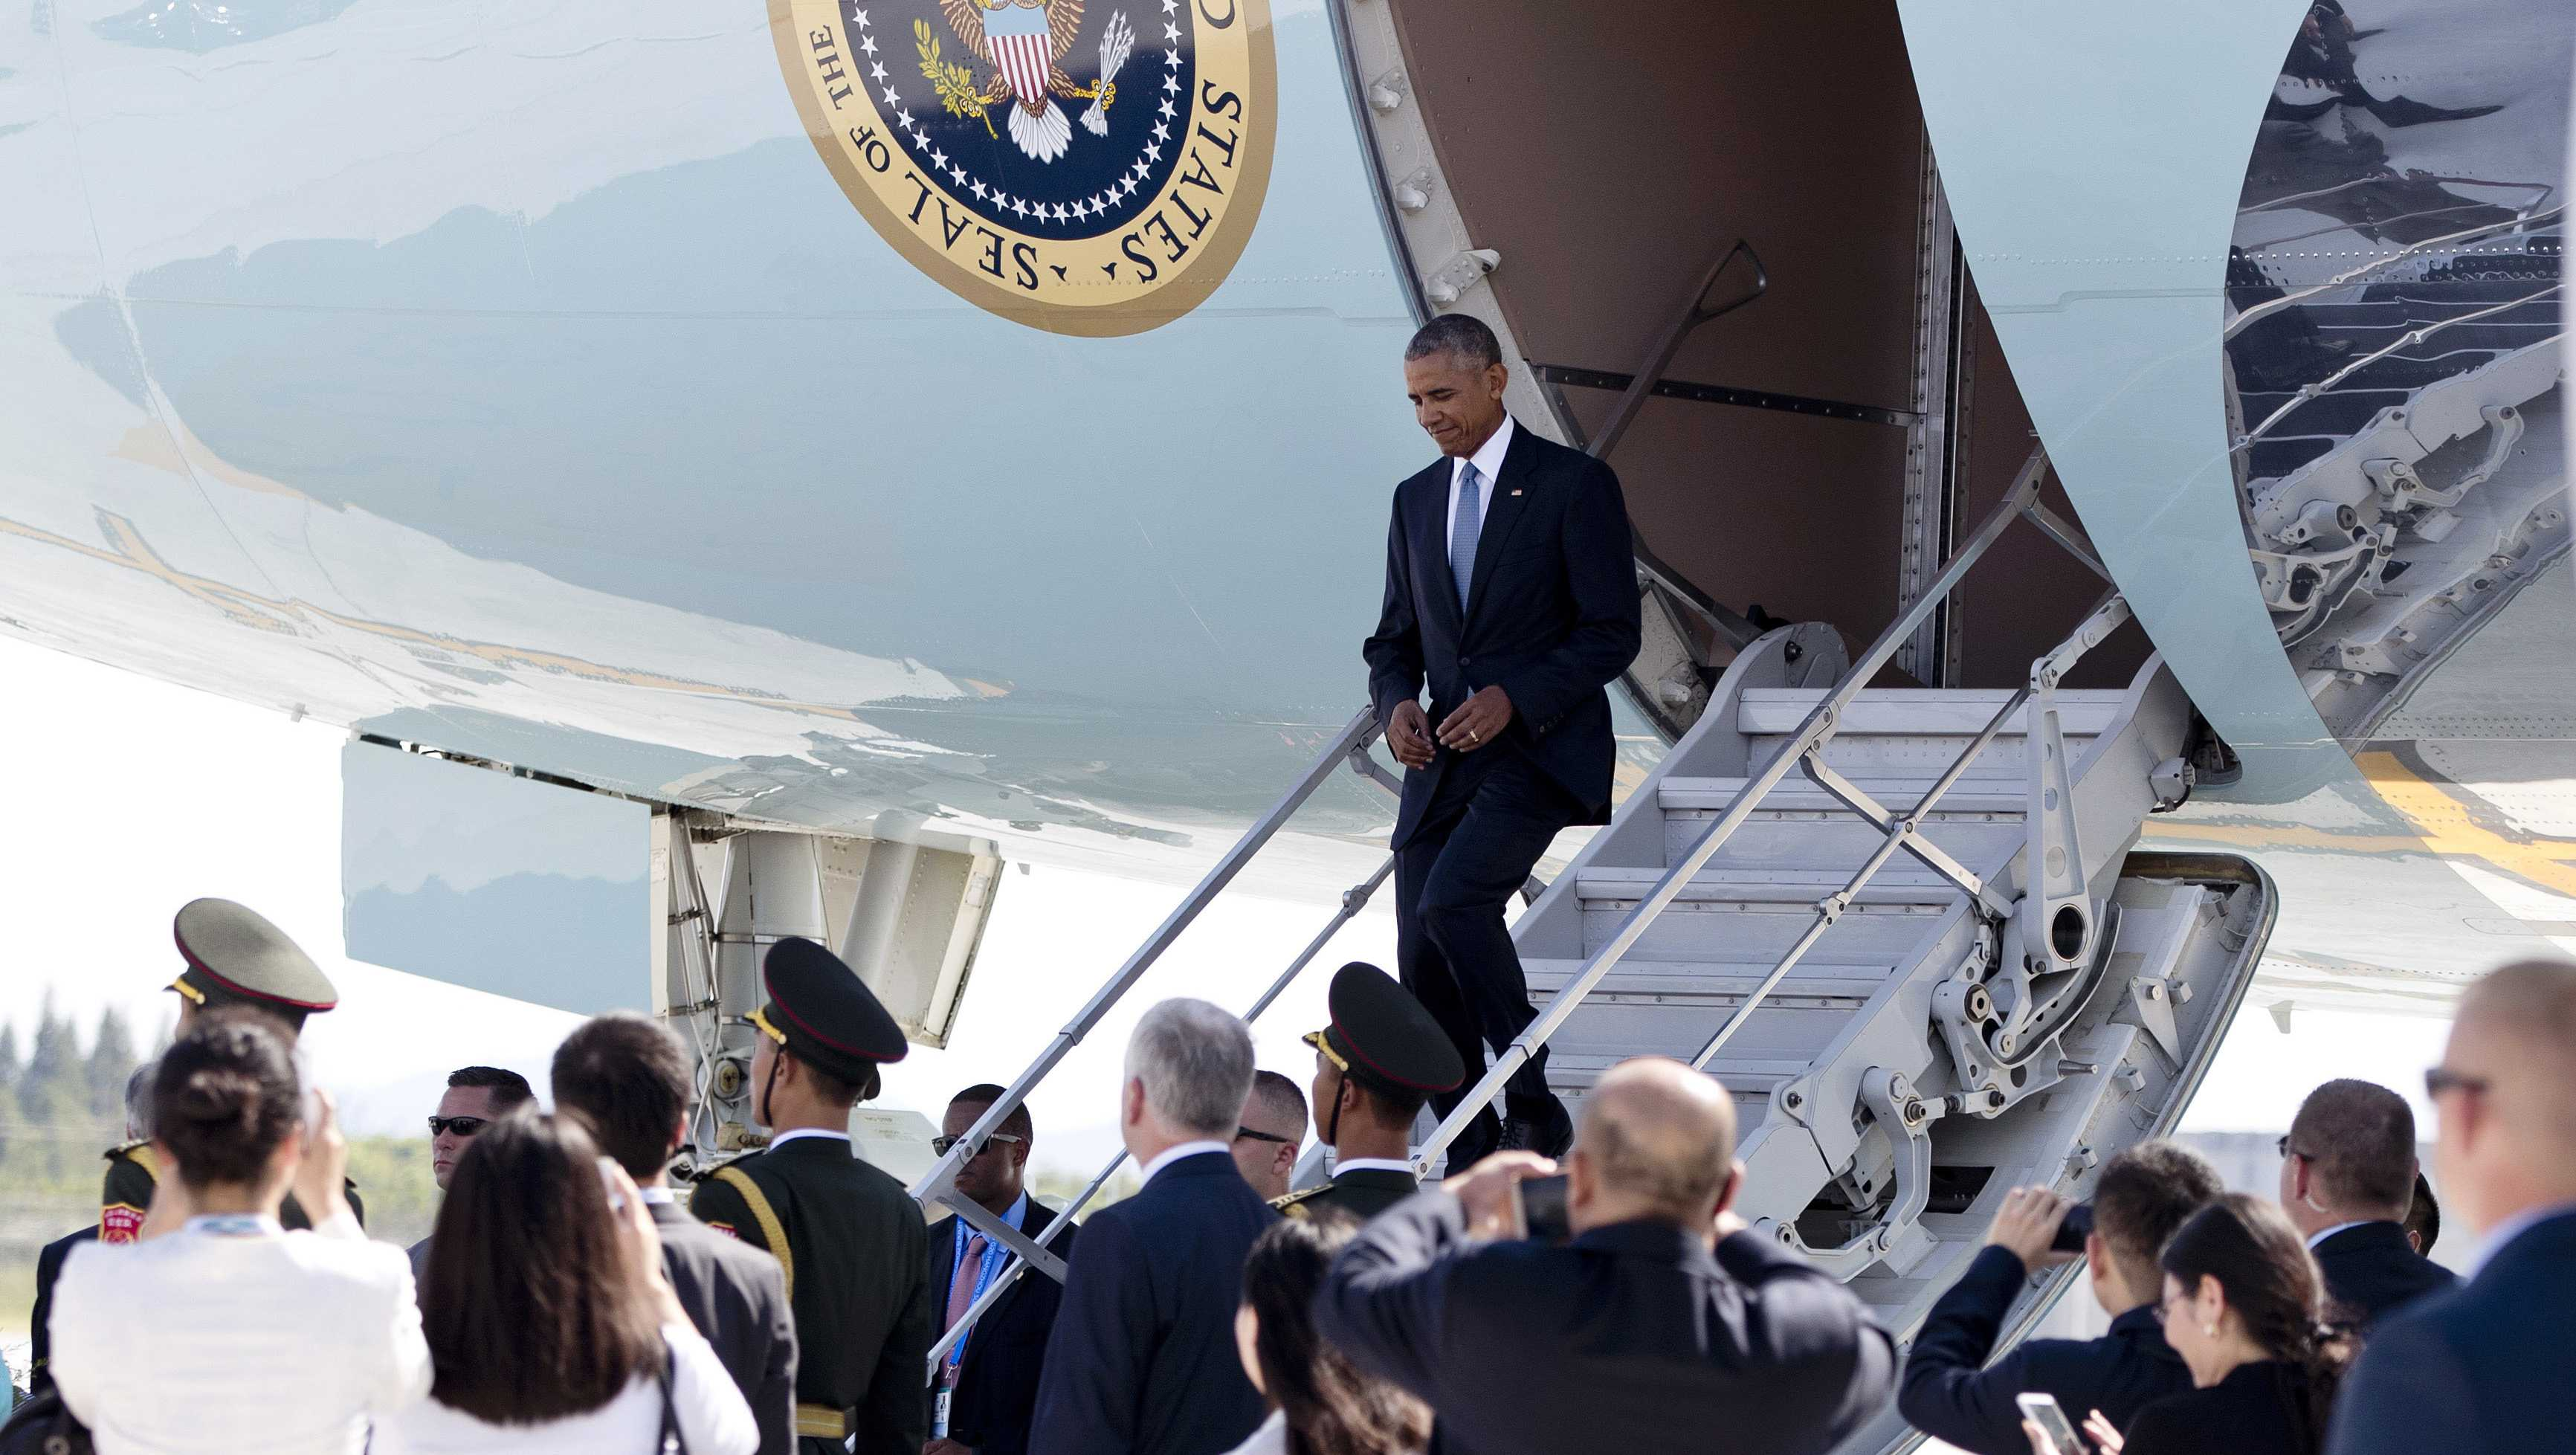 President Barack Obama arrives on Air Force One at Hangzhou Xiaoshan International Airport in Hangzhou in eastern China's Zhejiang province, Saturday, Sept. 3, 2016. President Obama hopes to highlight his administration's ongoing commitment to the G20 as the premier forum for international economic cooperation as well as the U.S. rebalance to Asia and the Pacific.